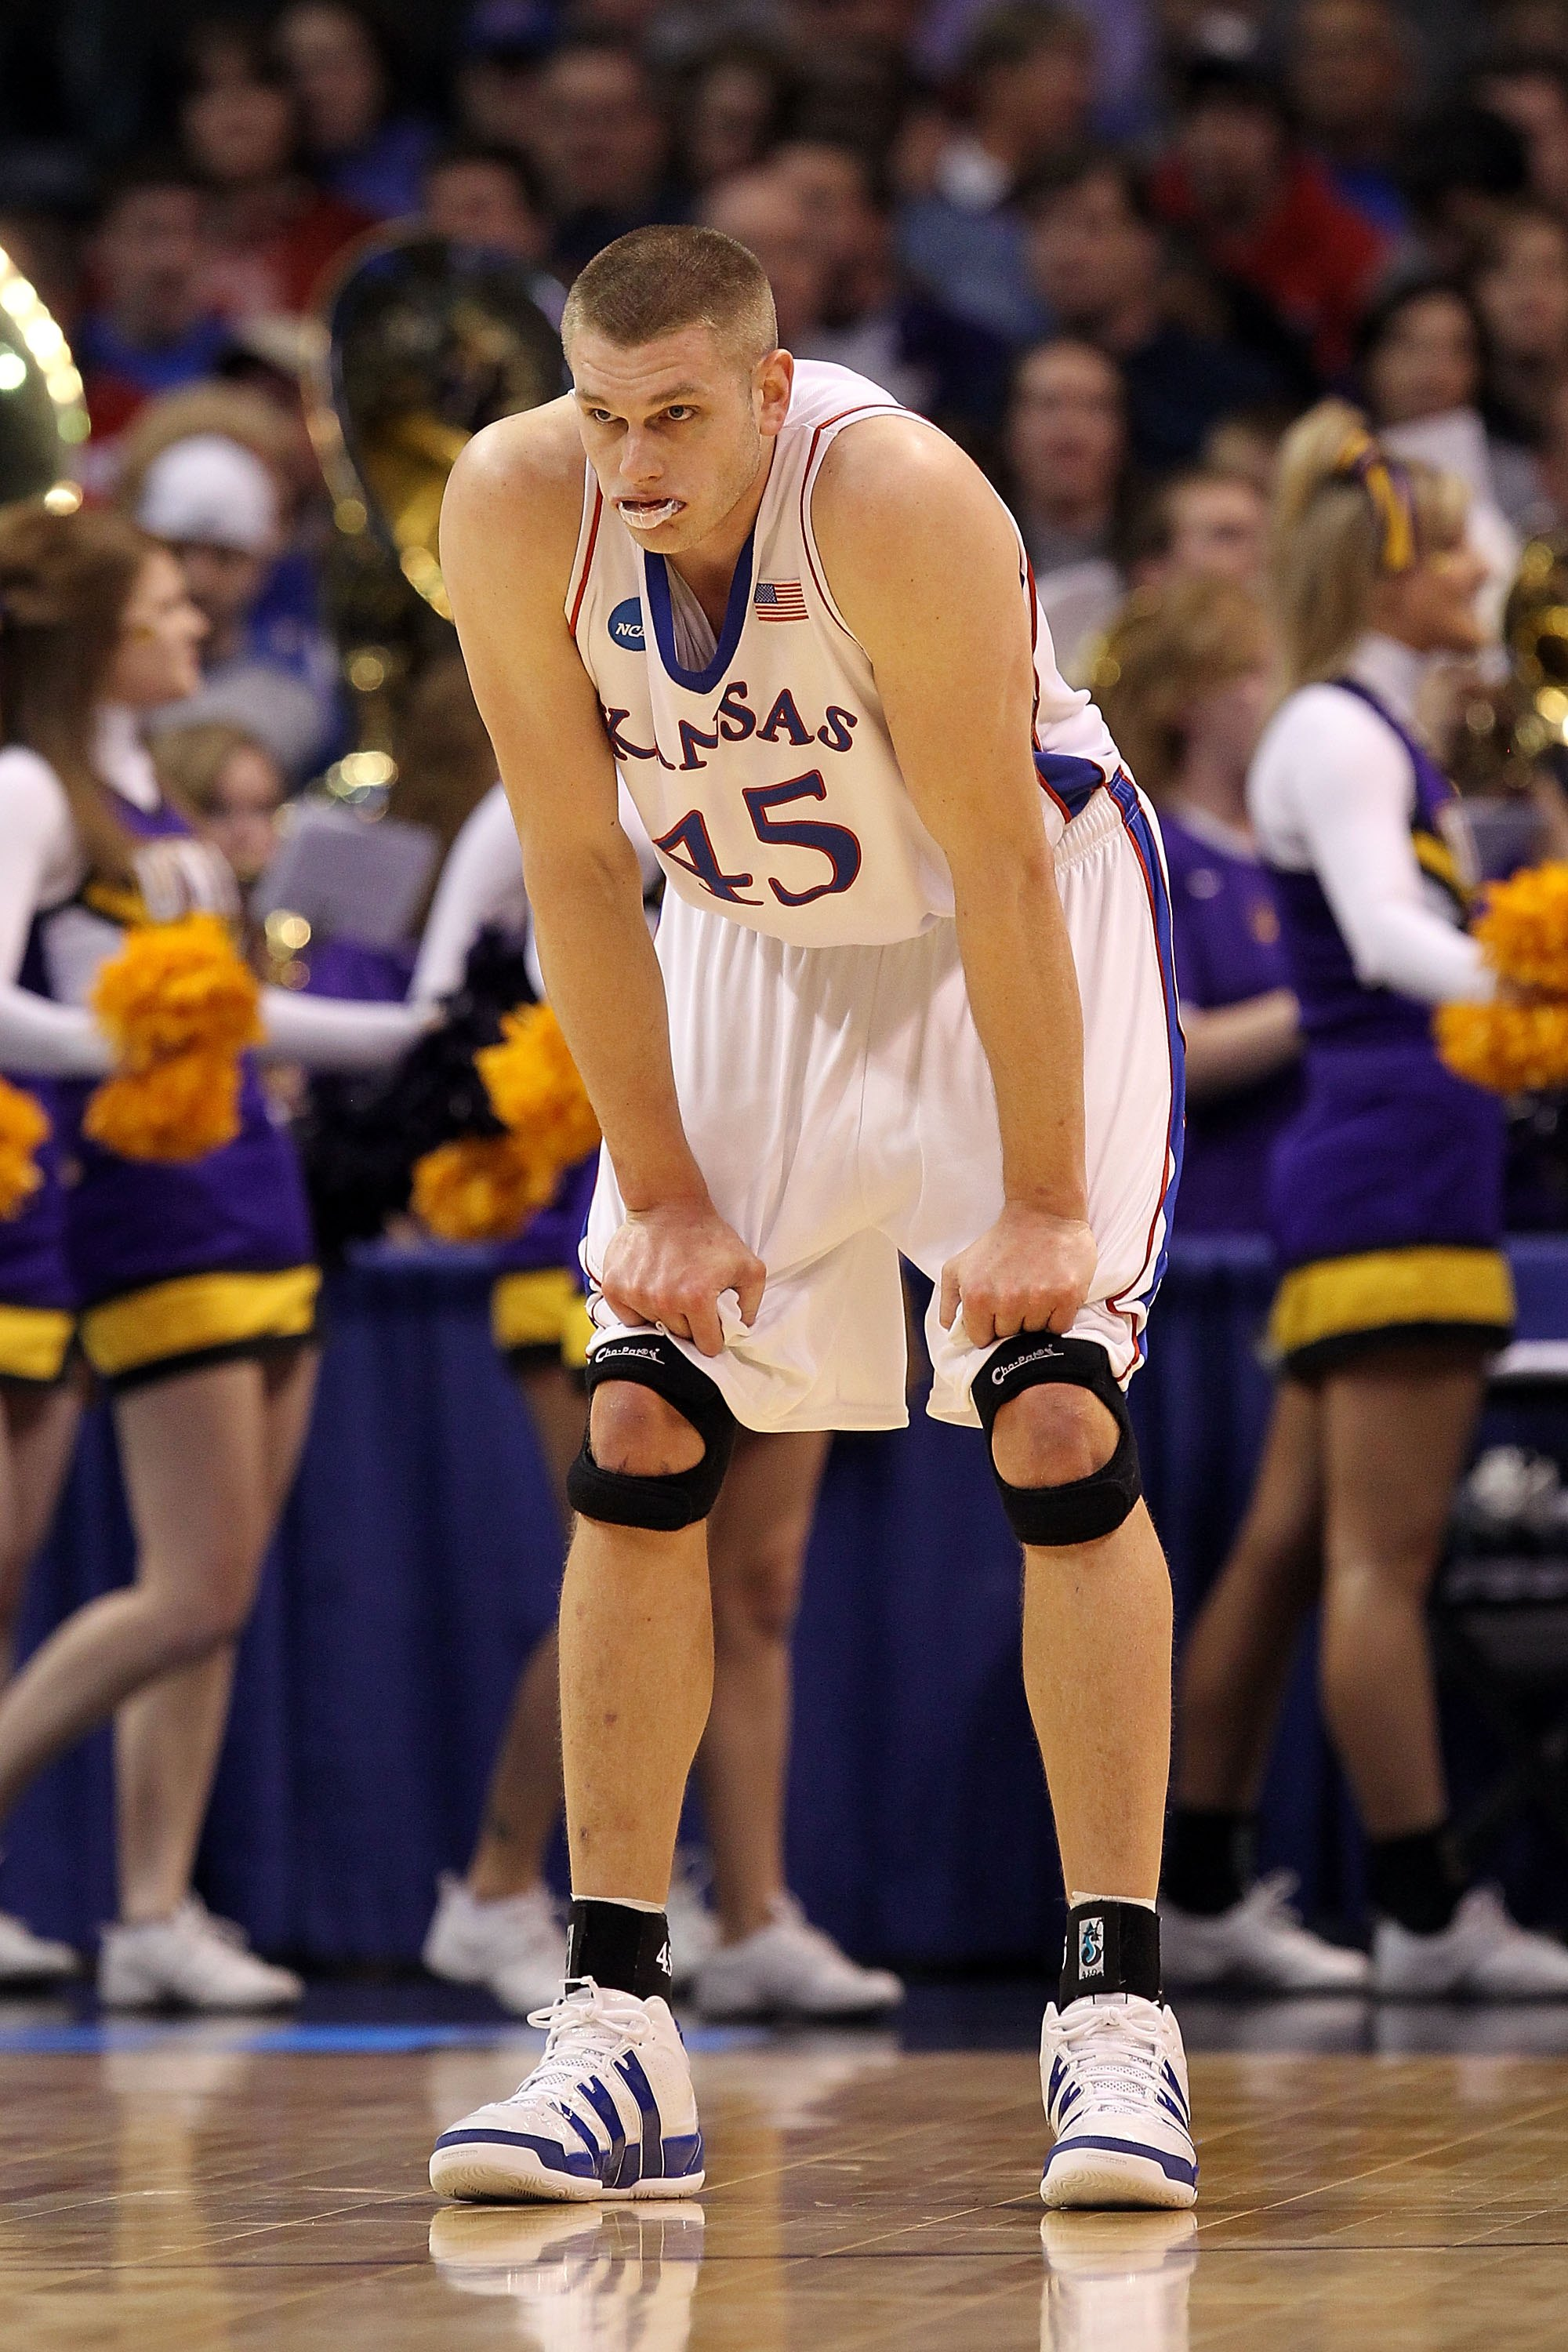 OKLAHOMA CITY - MARCH 20:  Cole Aldrich #45 of the Kansas Jayhawks looks on against the Northern Iowa Panthers during the second round of the 2010 NCAA men's basketball tournament at Ford Center on March 20, 2010 in Oklahoma City, Oklahoma.  (Photo by Ron